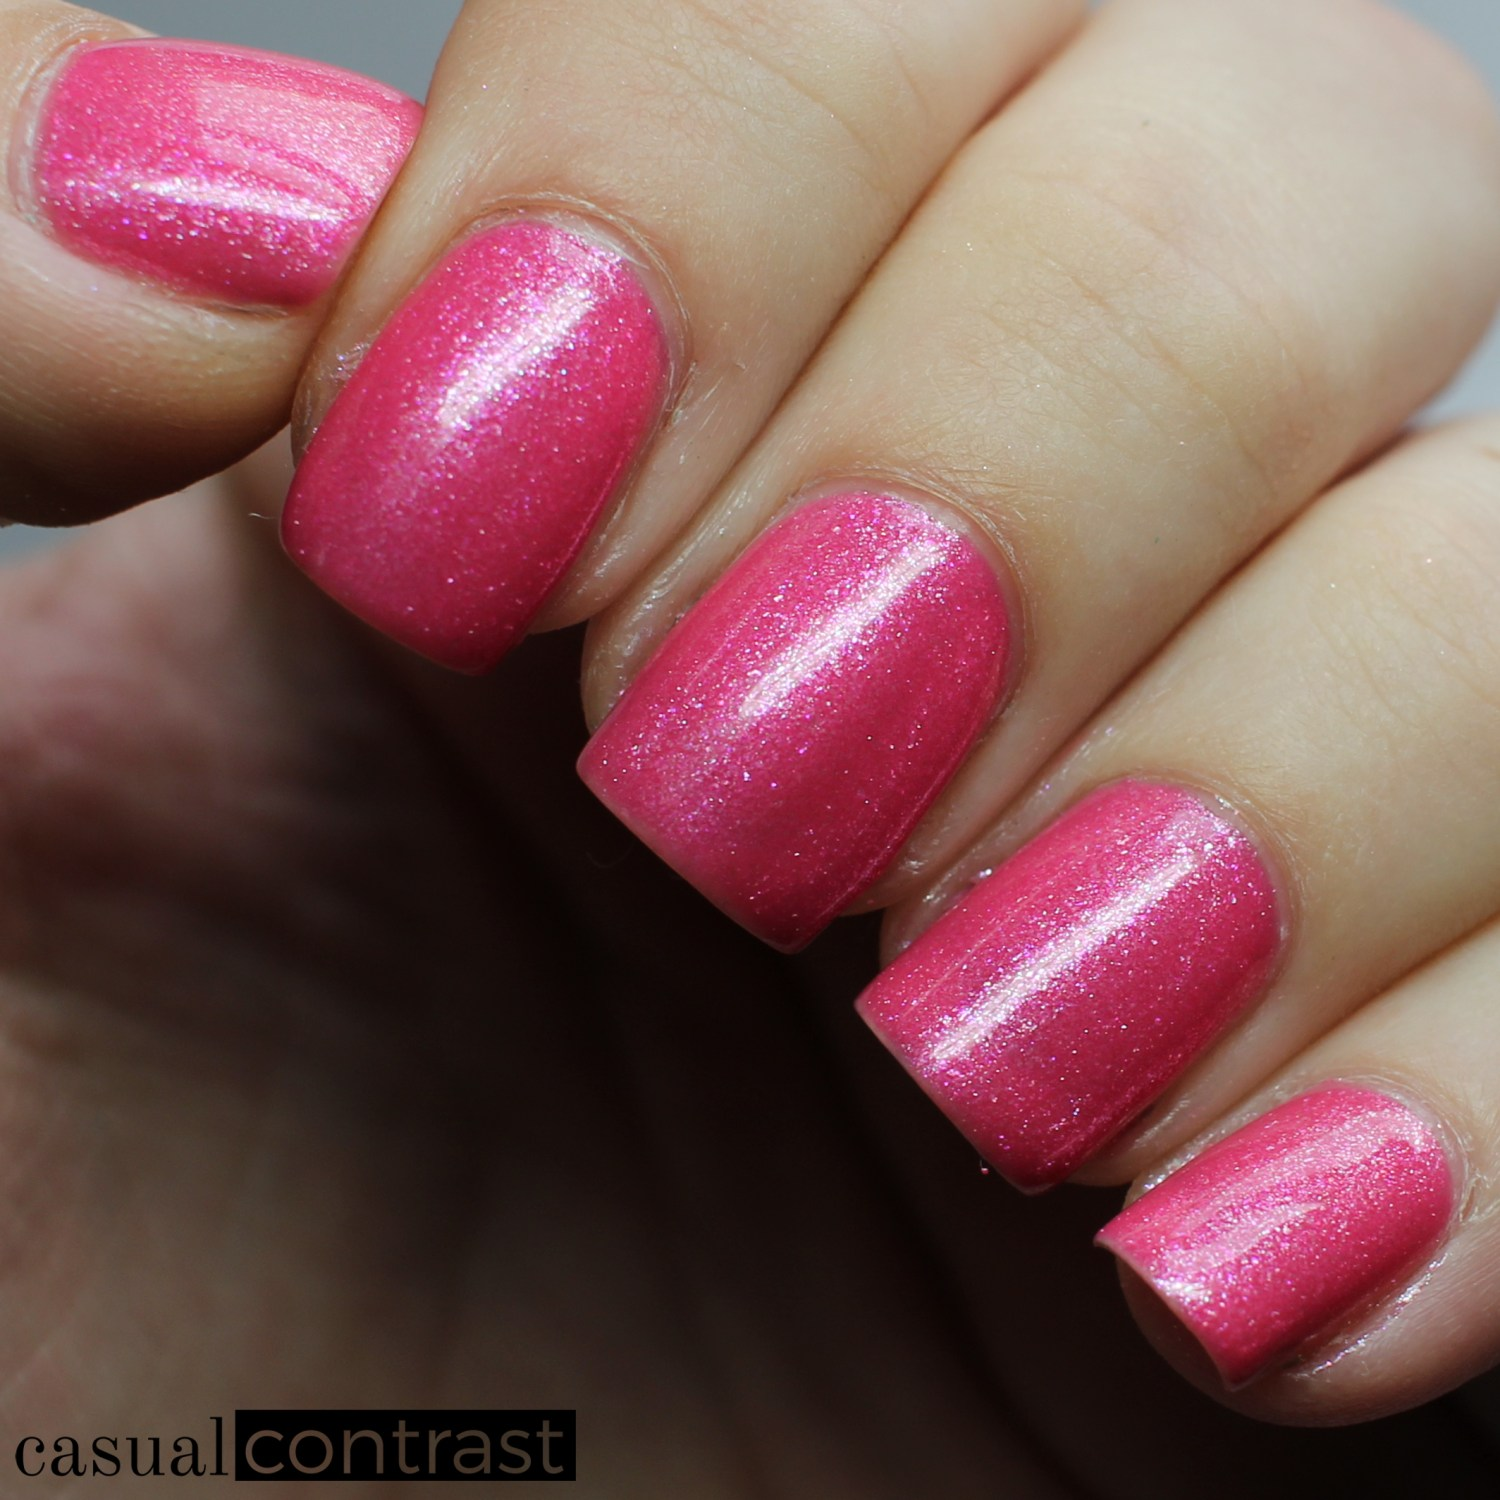 Image of Swatch of Zoya Azalea from the Zoya Petals Collection